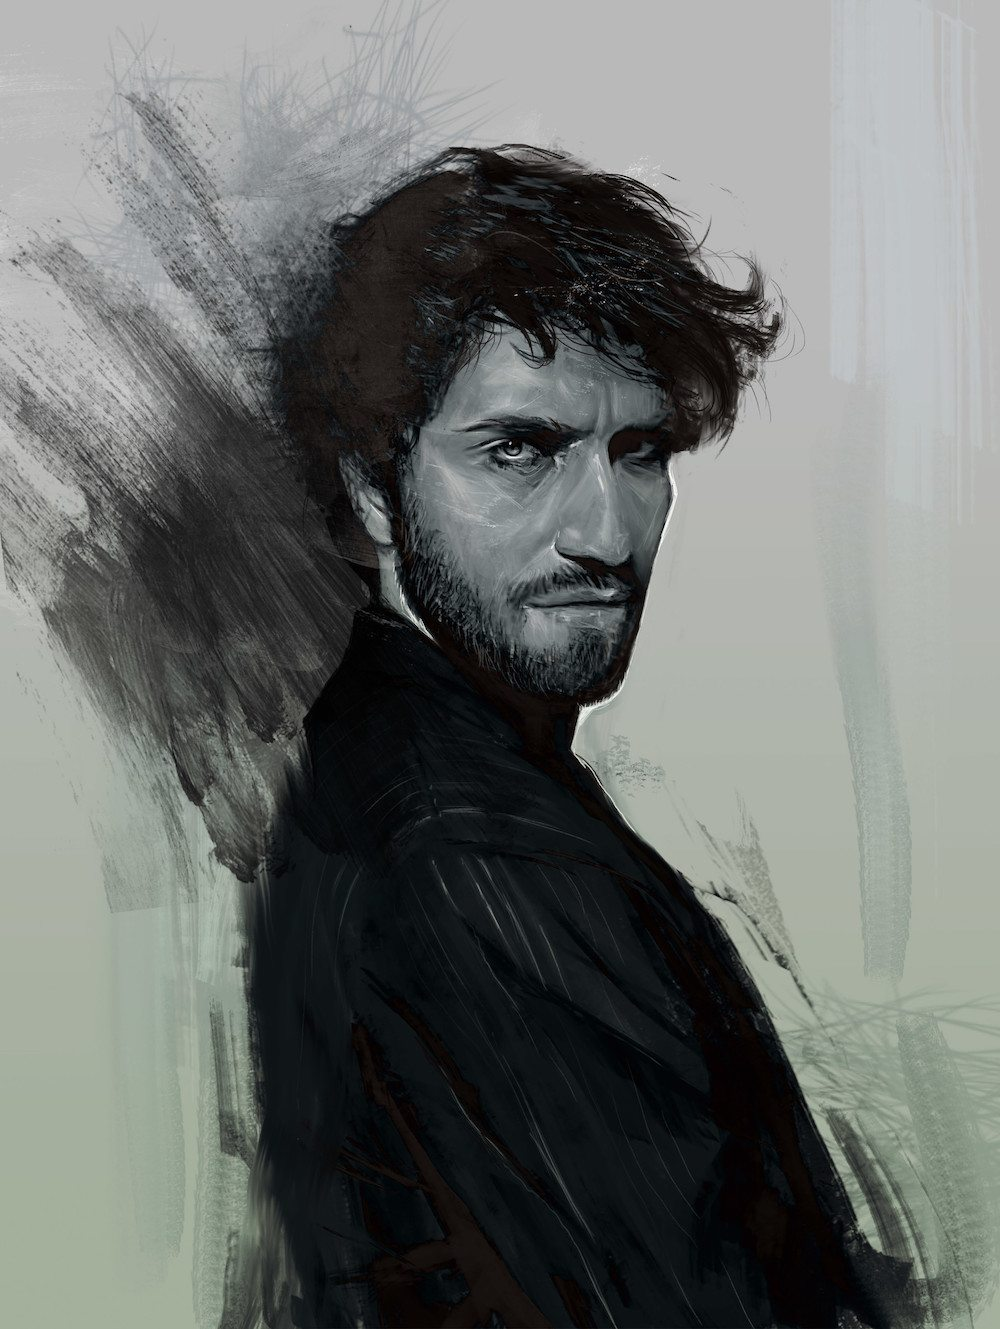 Black and White Portrait of a Man by Bella Bergolts